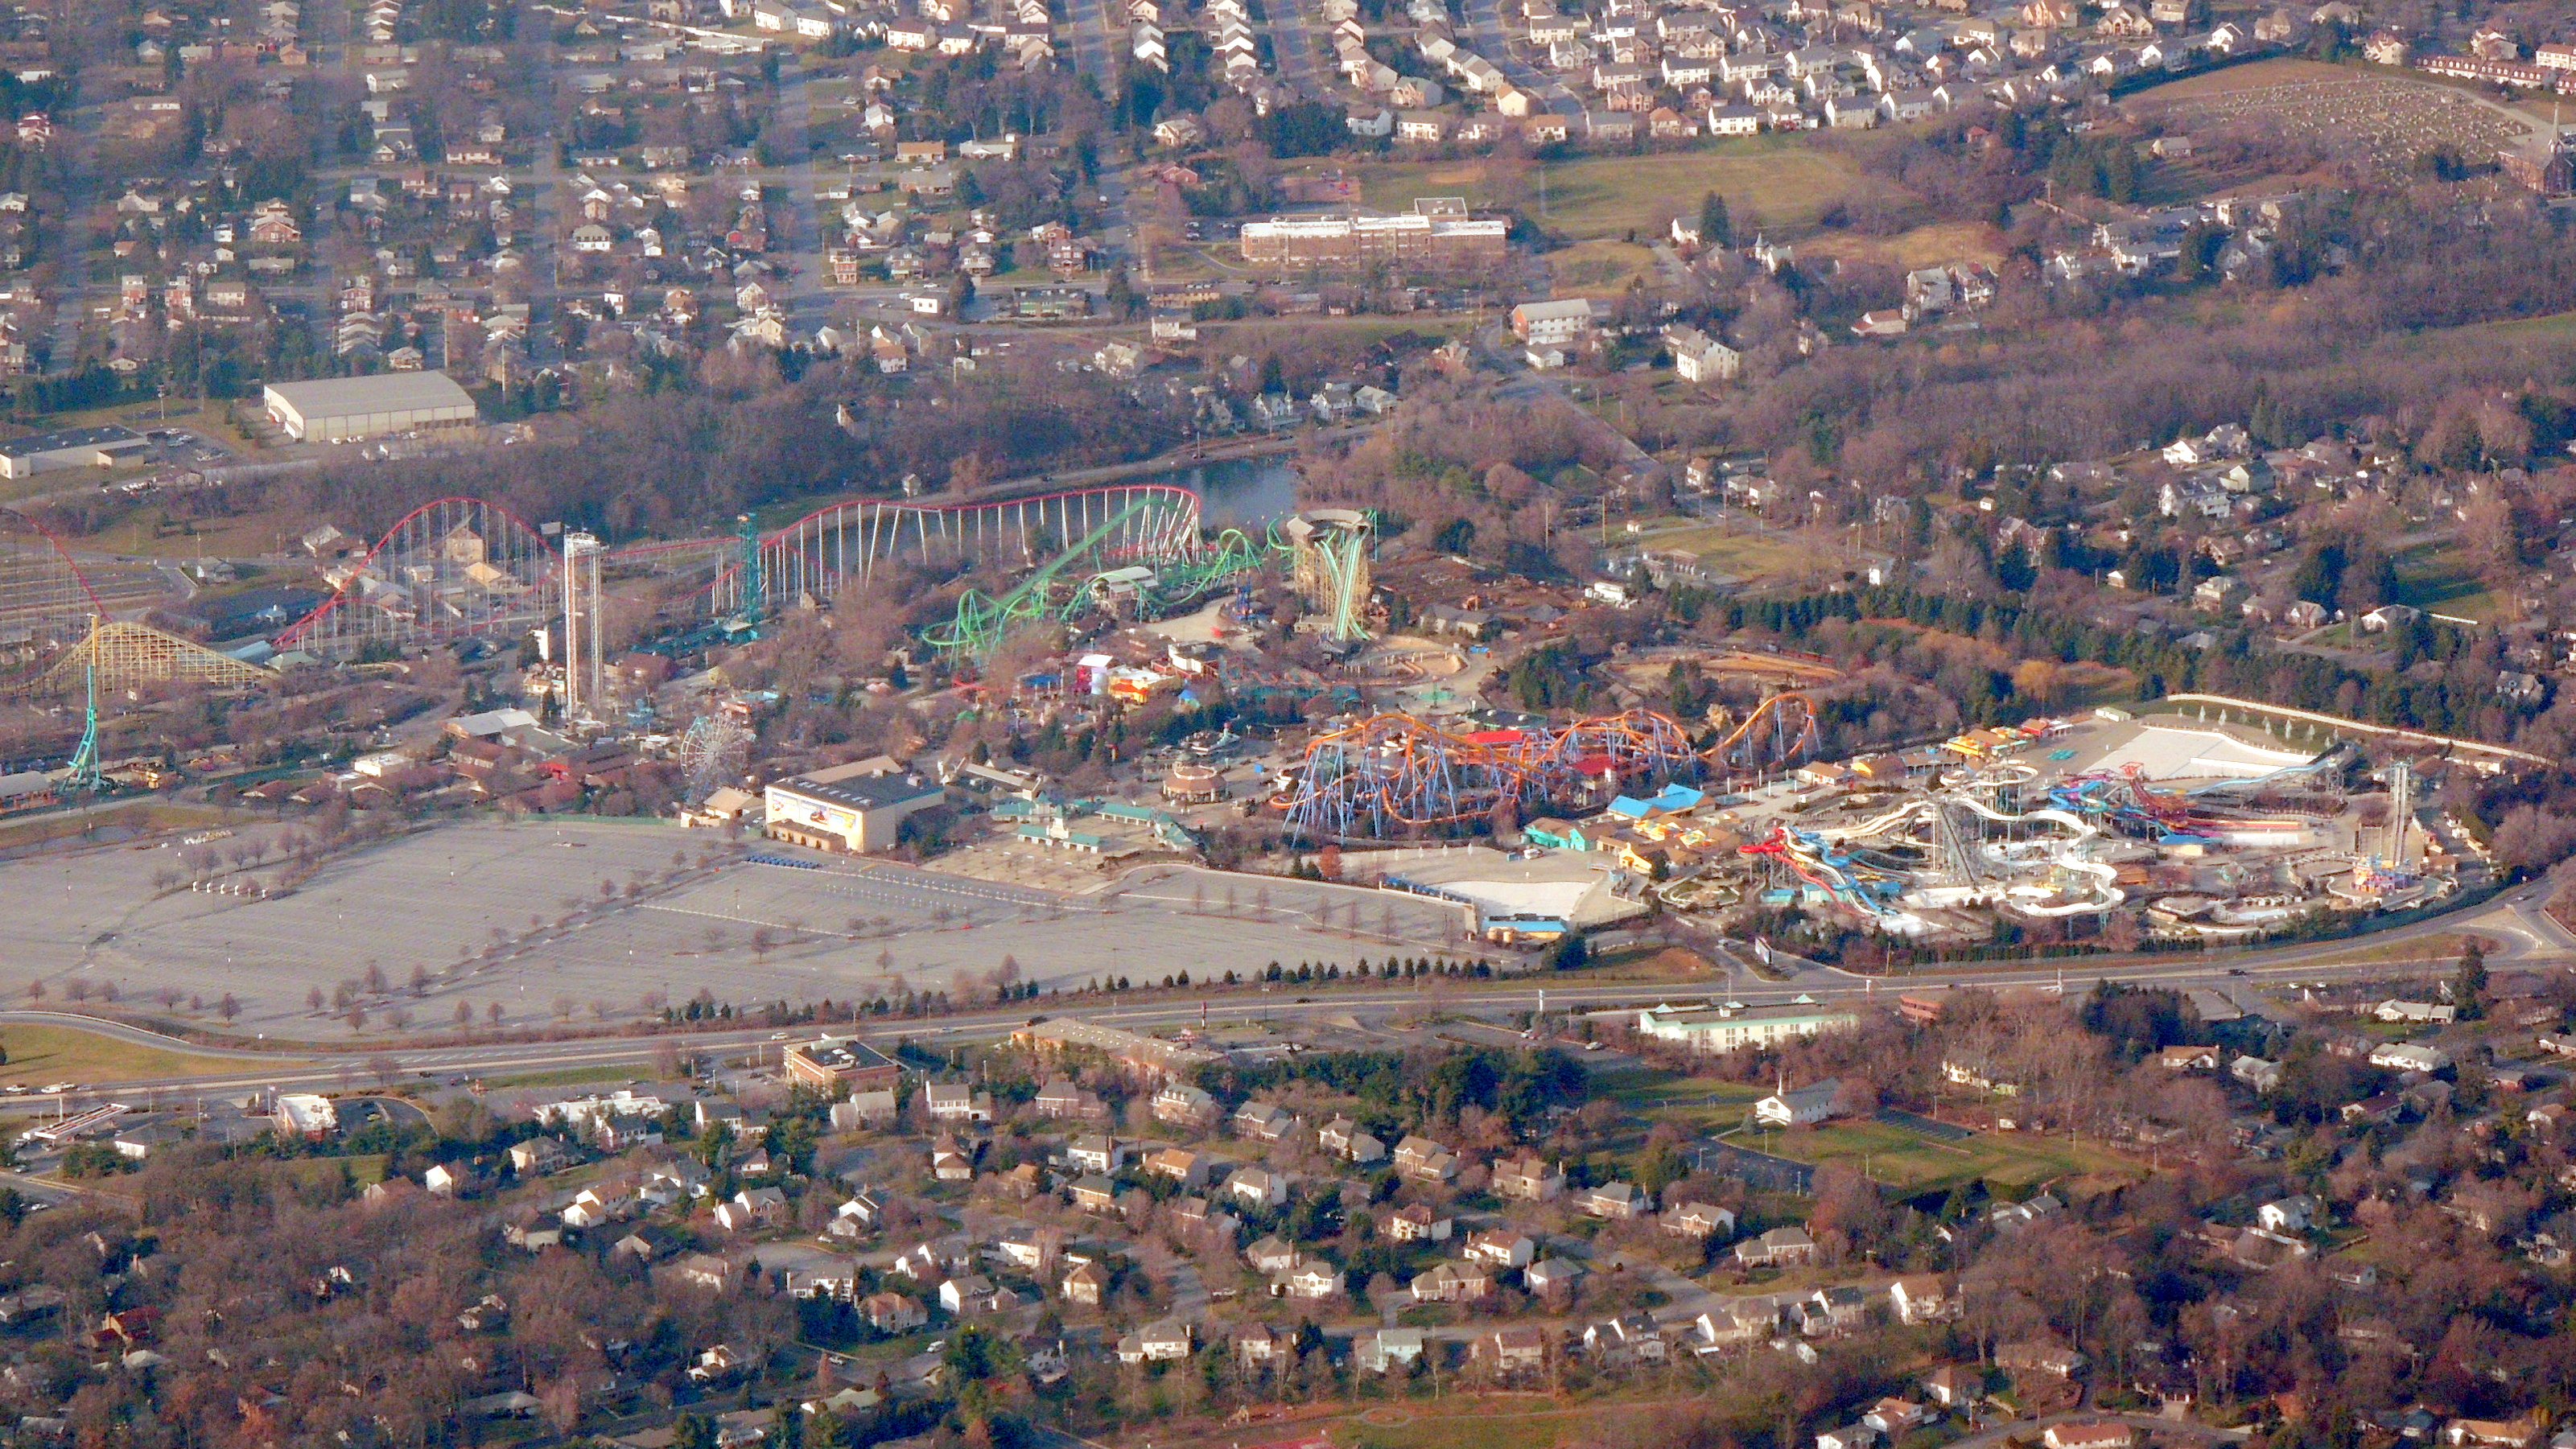 Dorney Park and Wildwater Kingdom in Allentown PA